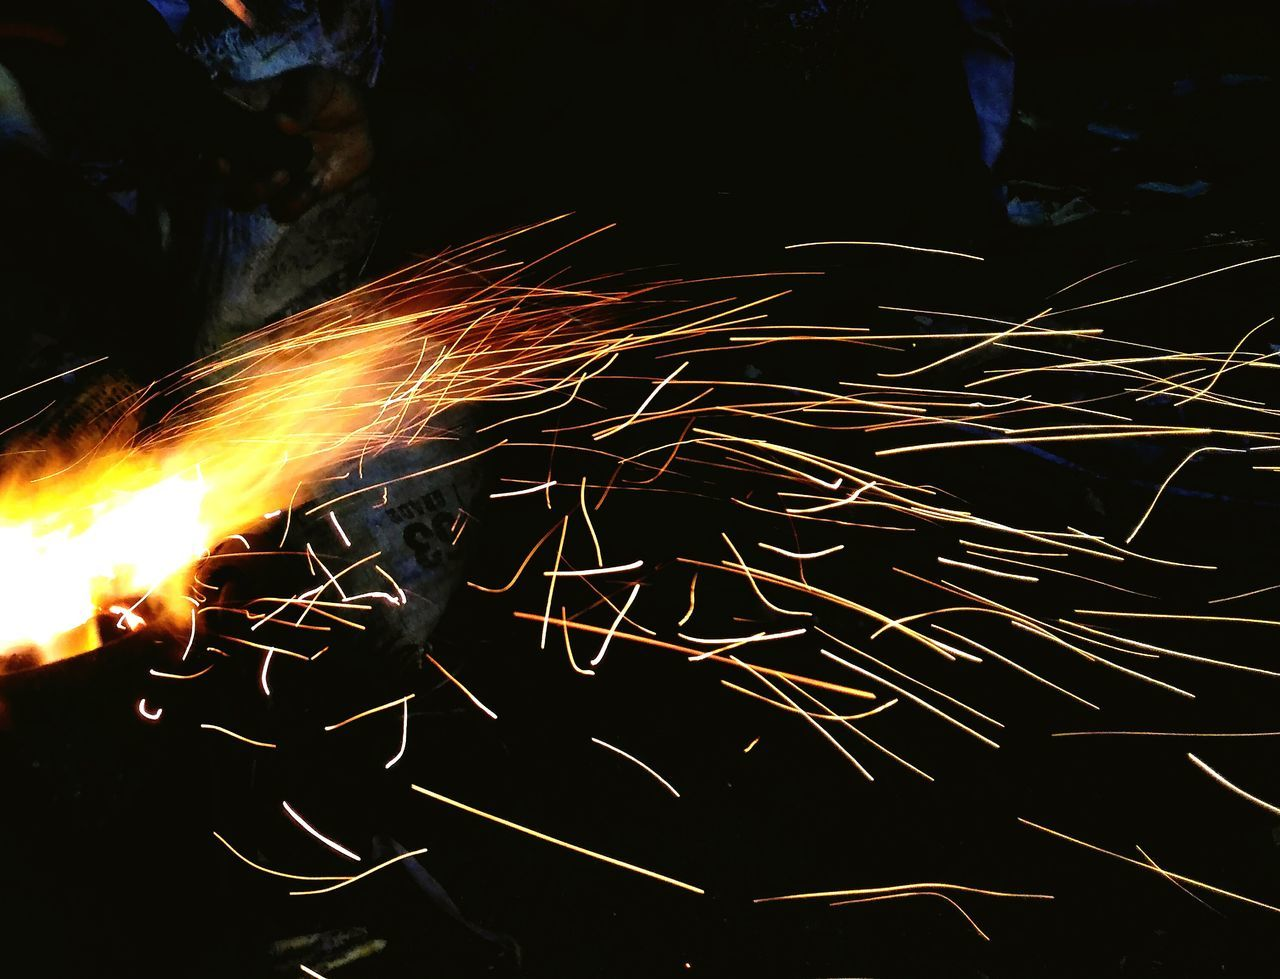 sparks, glowing, long exposure, industry, no people, metal, motion, heat - temperature, night, indoors, metal industry, close-up, technology, manufacturing equipment